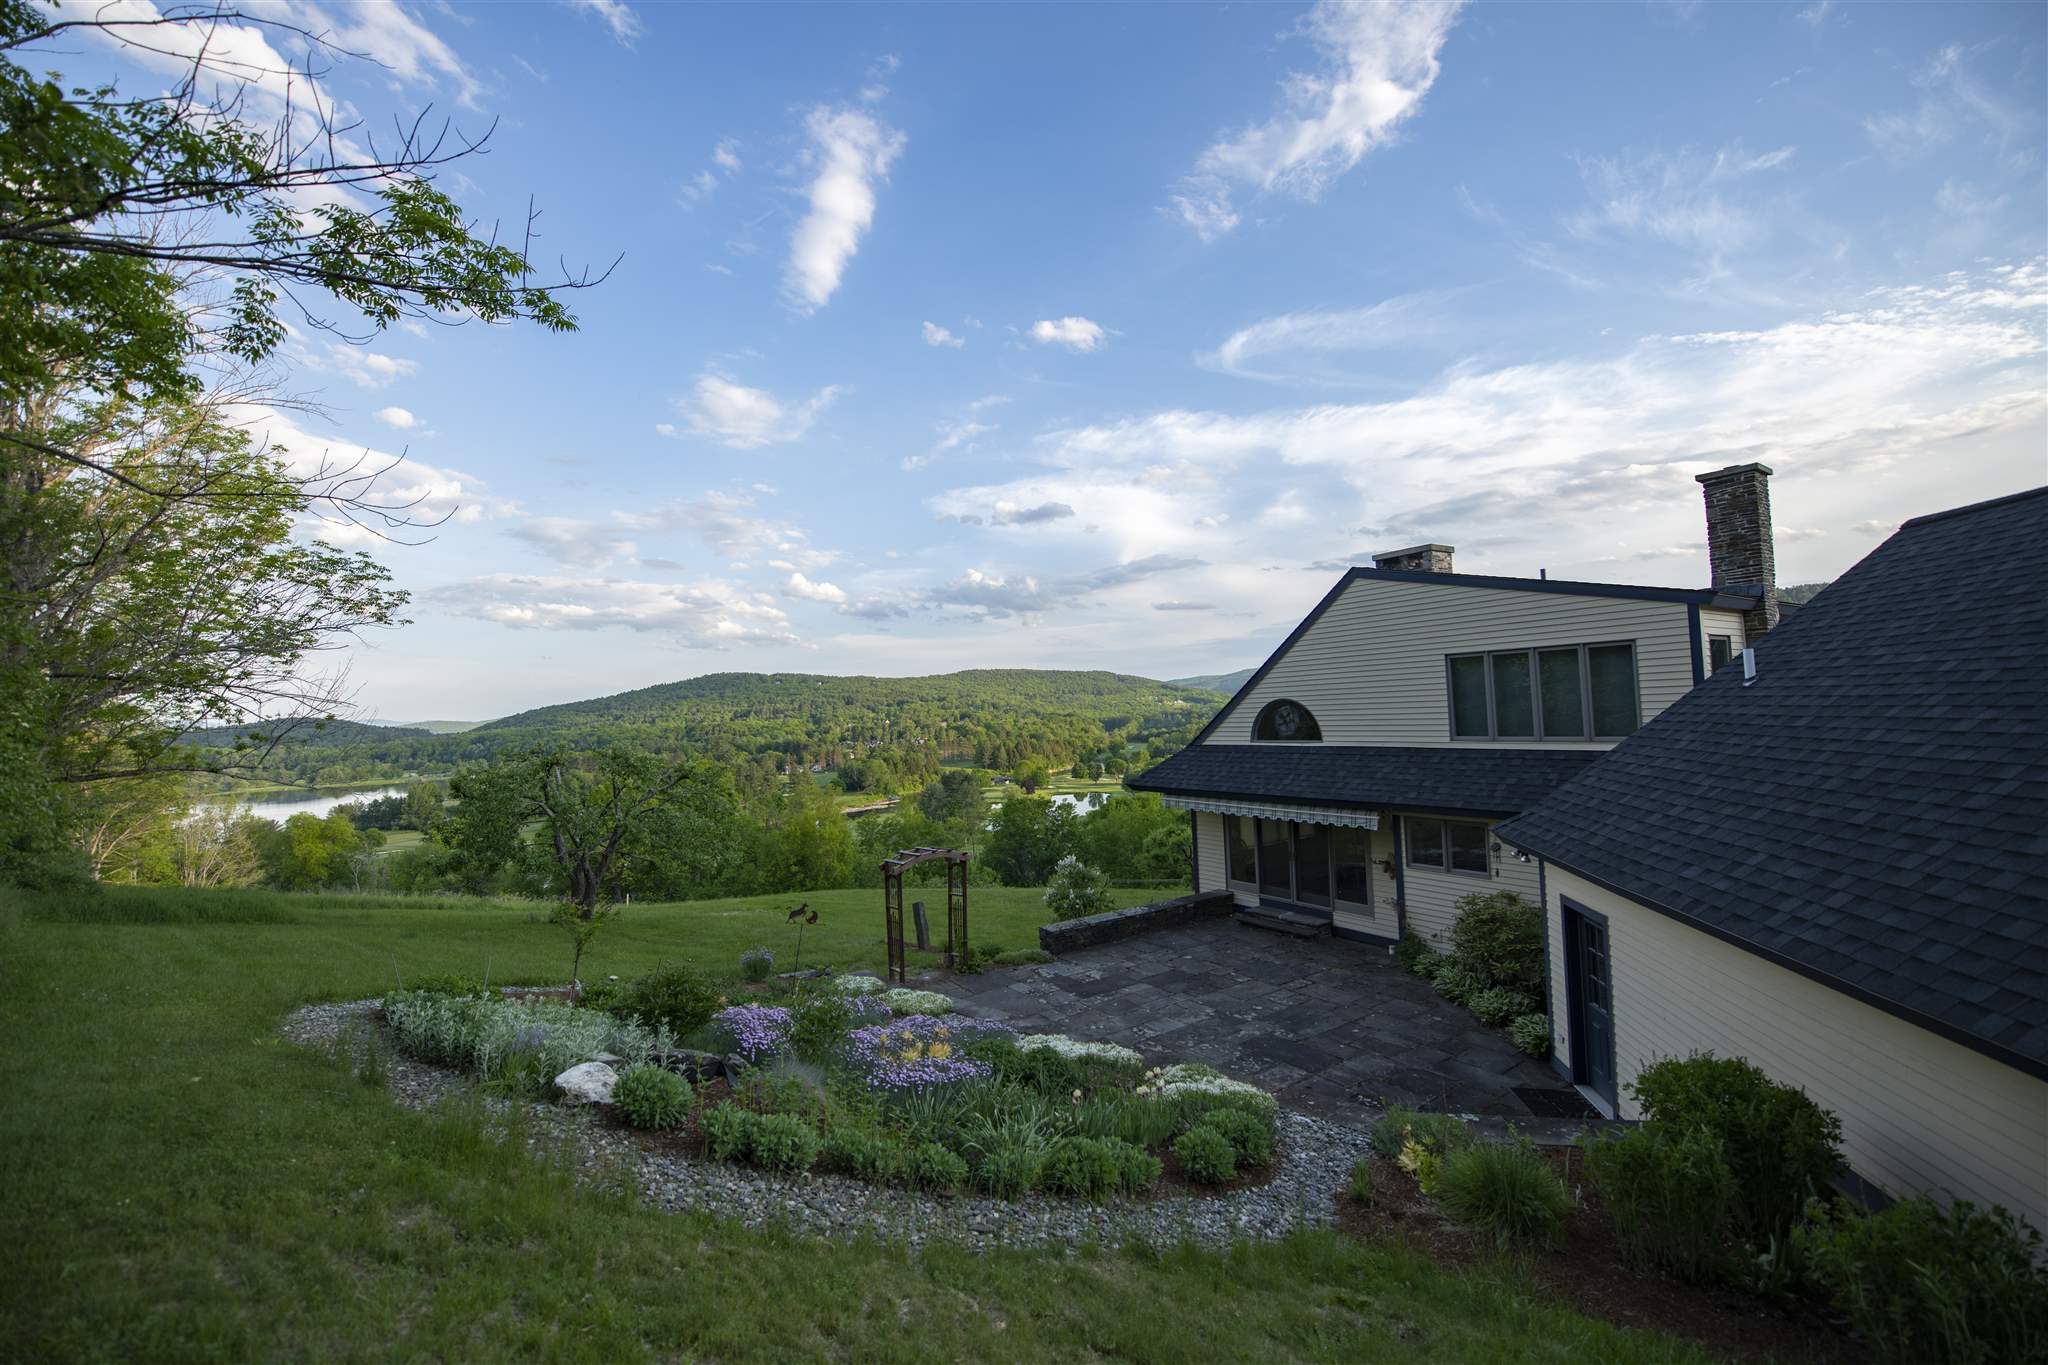 VILLAGE OF QUECHEE IN TOWN OF HARTFORD VT Home for sale $$875,000 | $396 per sq.ft.